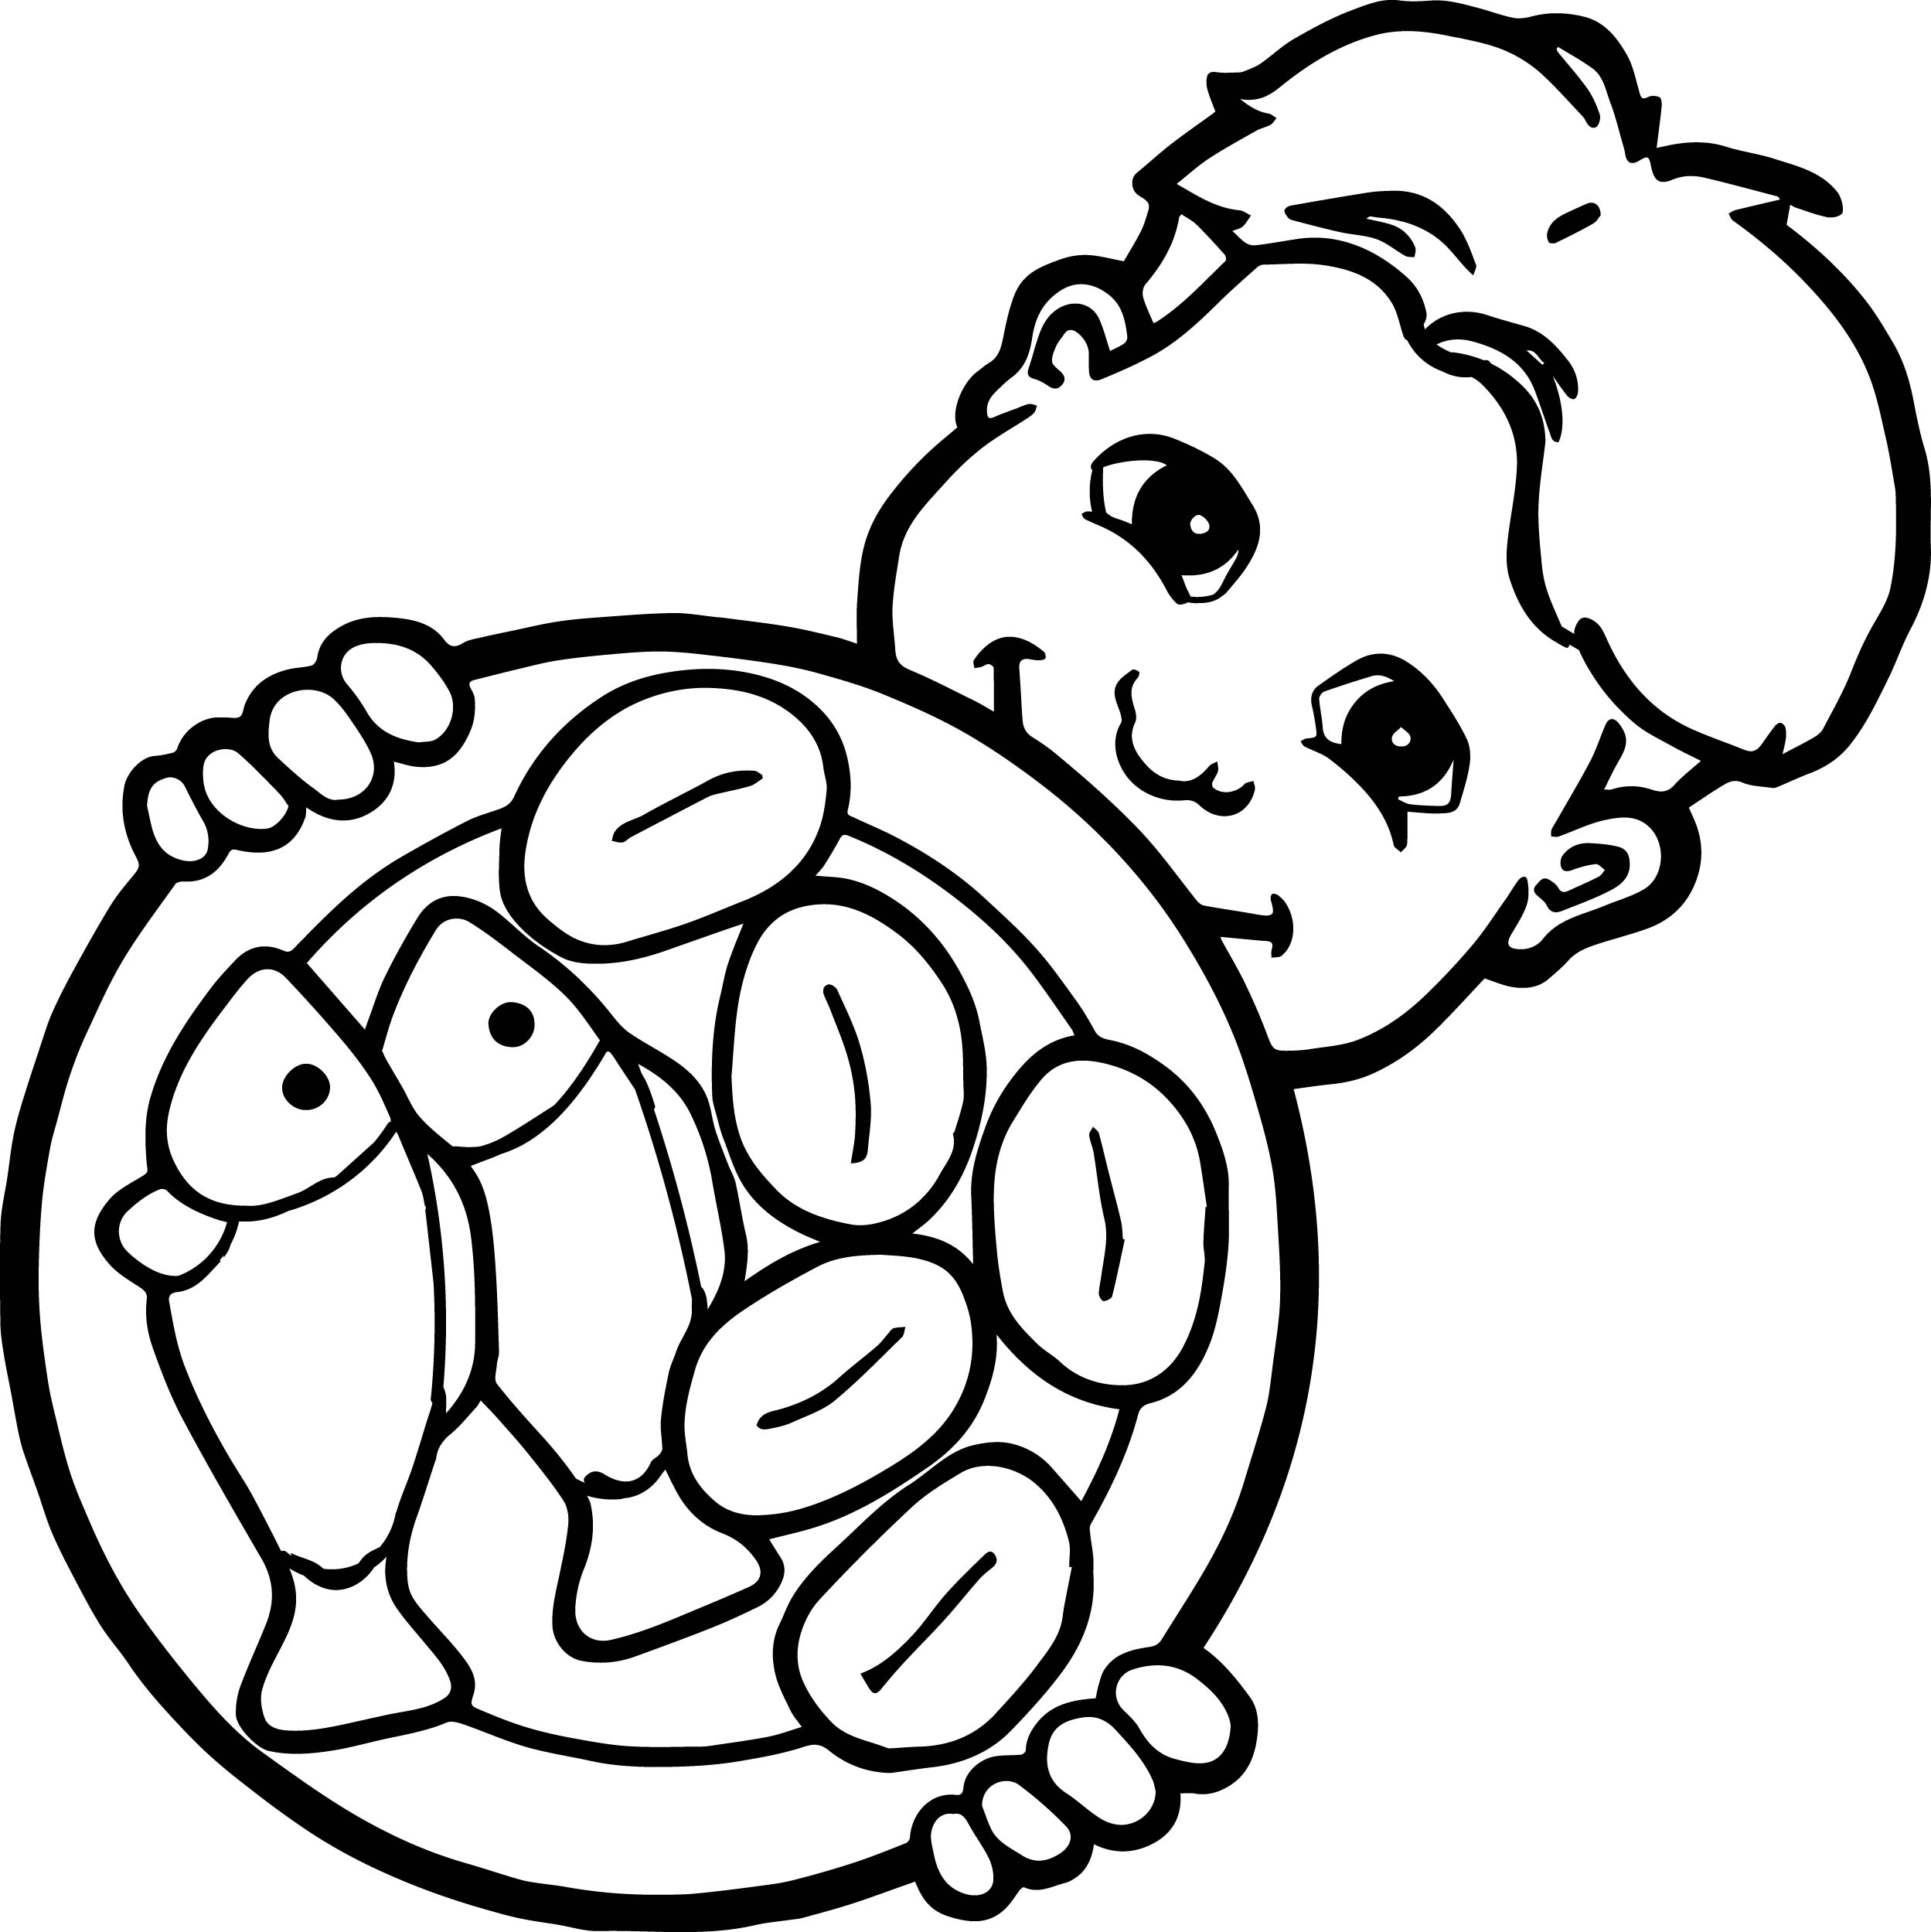 84 Loaves And Fishes Coloring Page